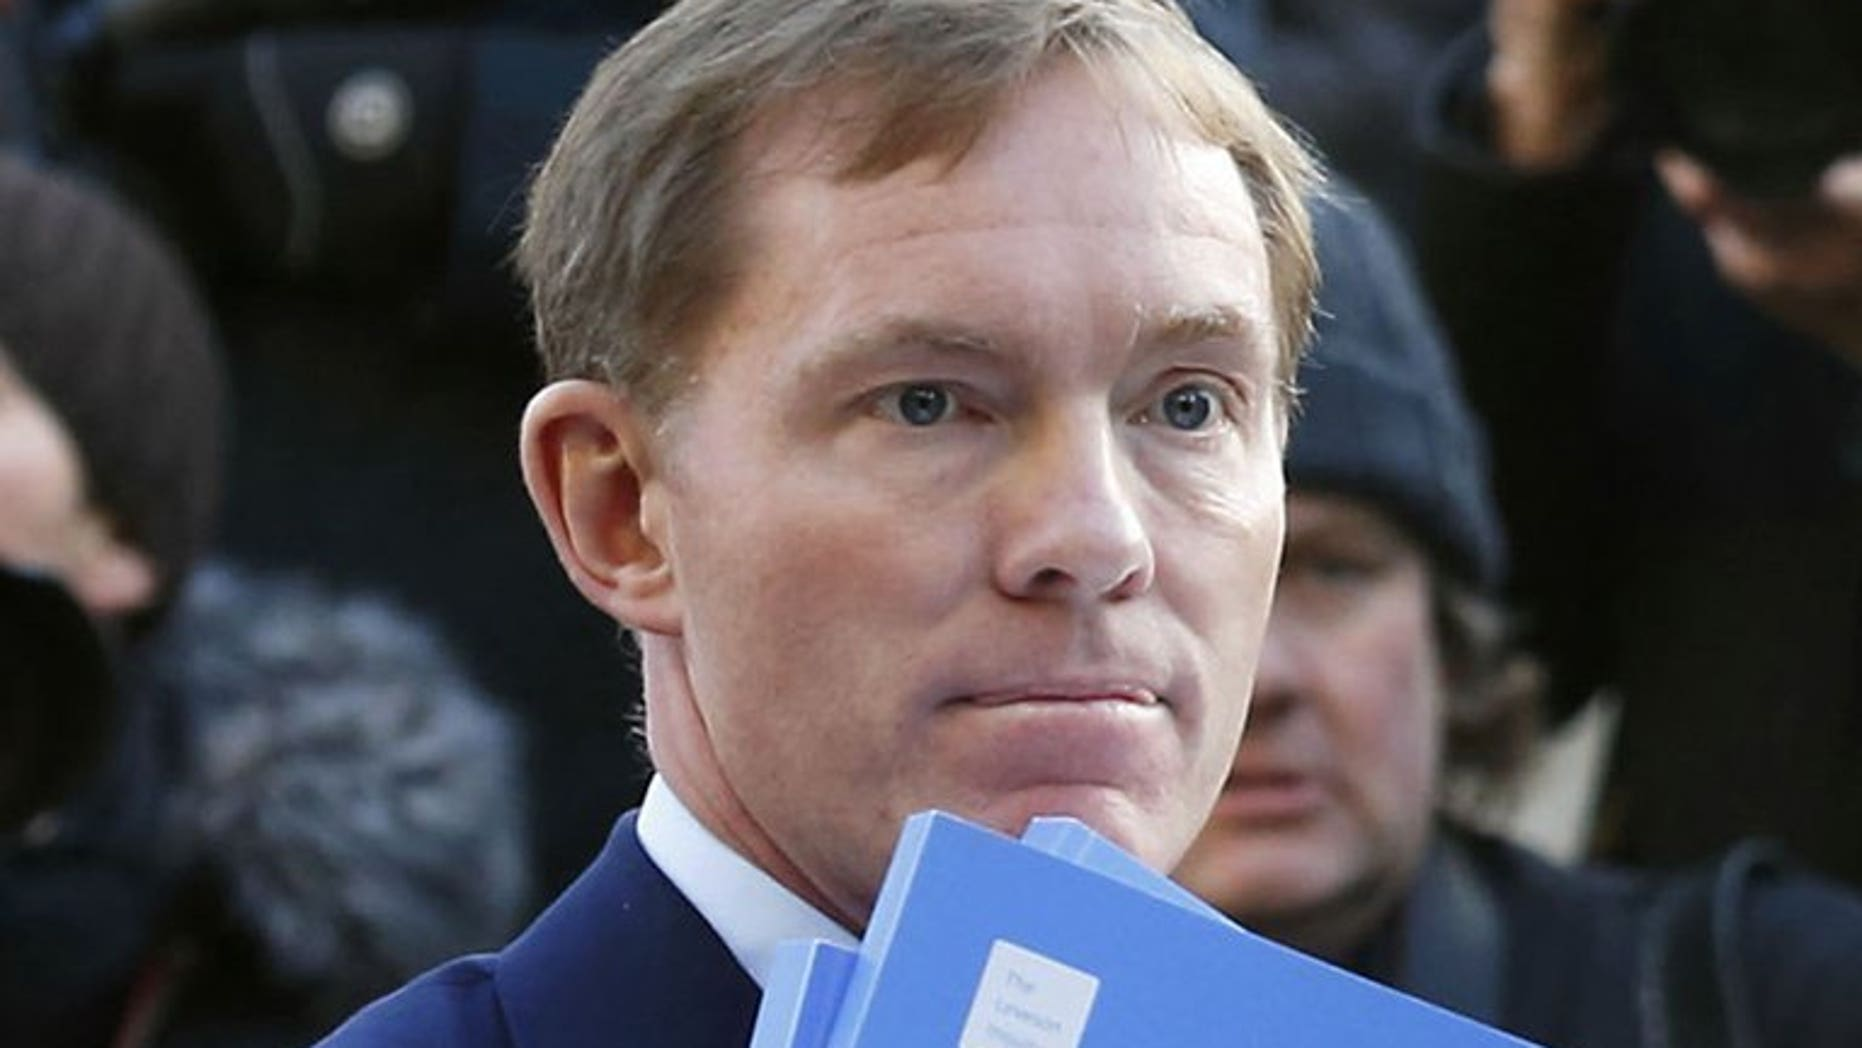 Labour's shadow immigration minister Chris Bryant pictured in central London on November 29, 2012. Bryant on Monday backed down over criticism of supermarket giant Tesco and high street clothes retailer Next for their employment of foreign workers in Britain.